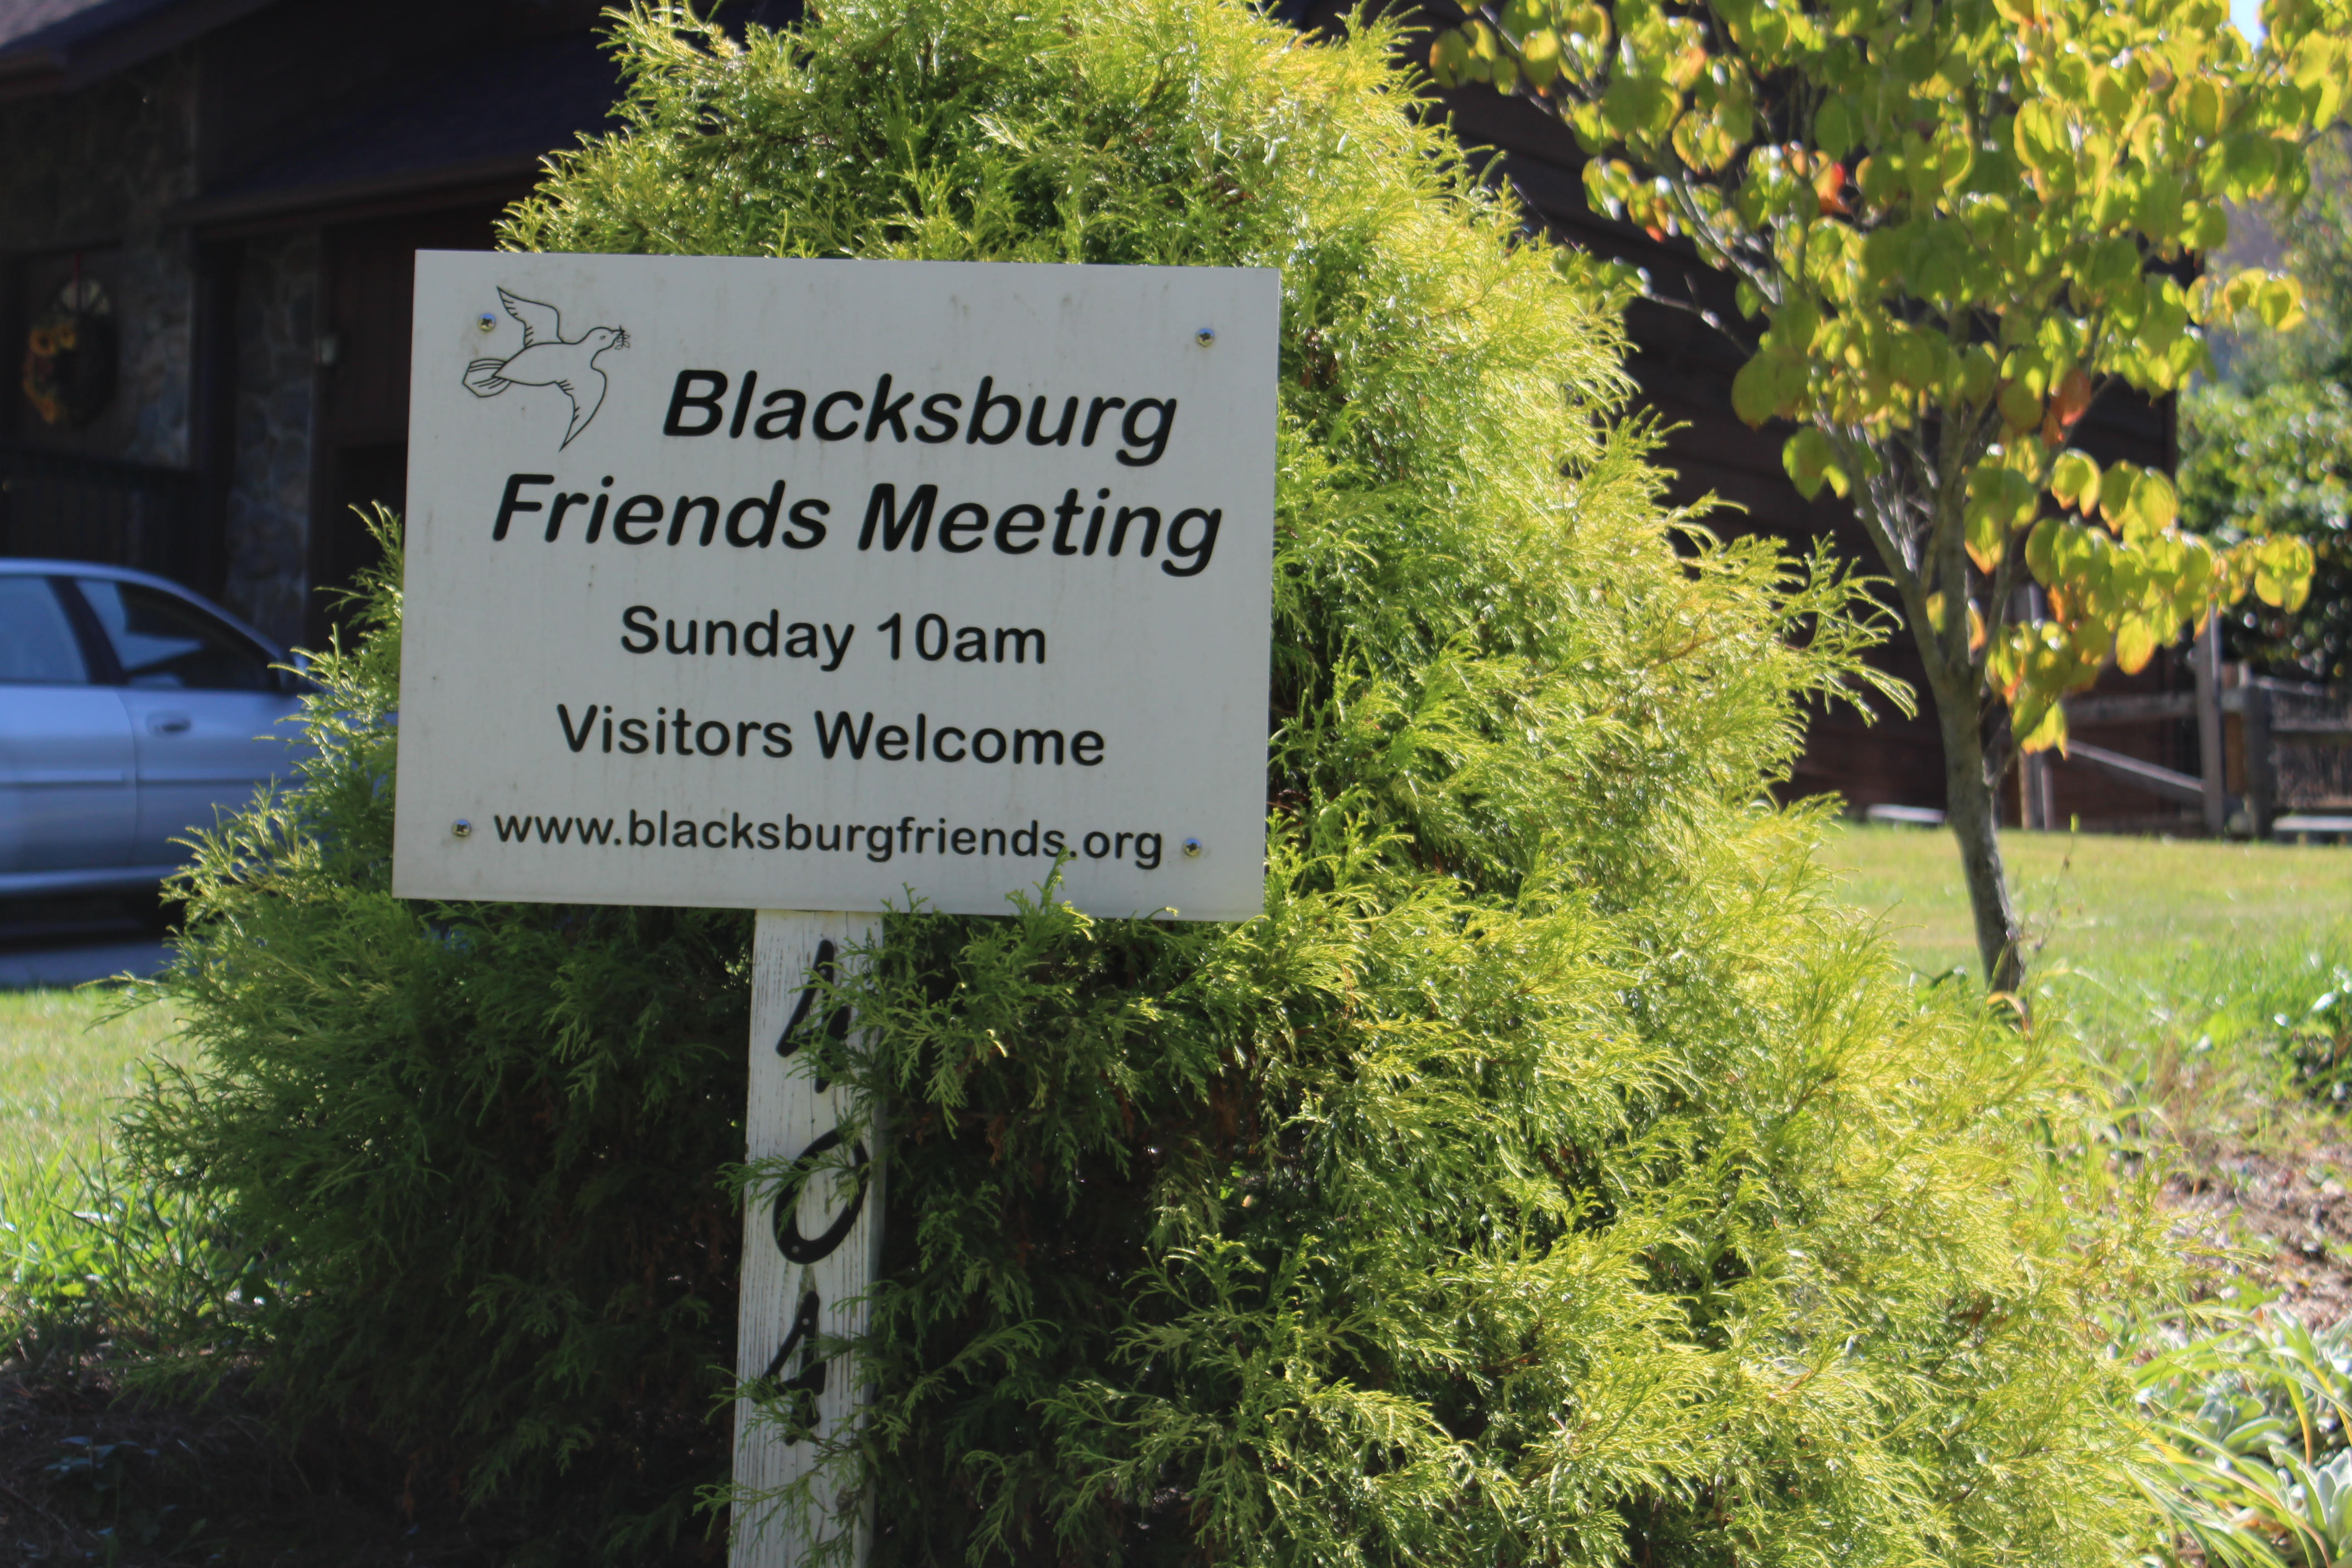 Driveway sign for Blacksburg Friends Meeting. Sunday 10am, Visitors Welcome